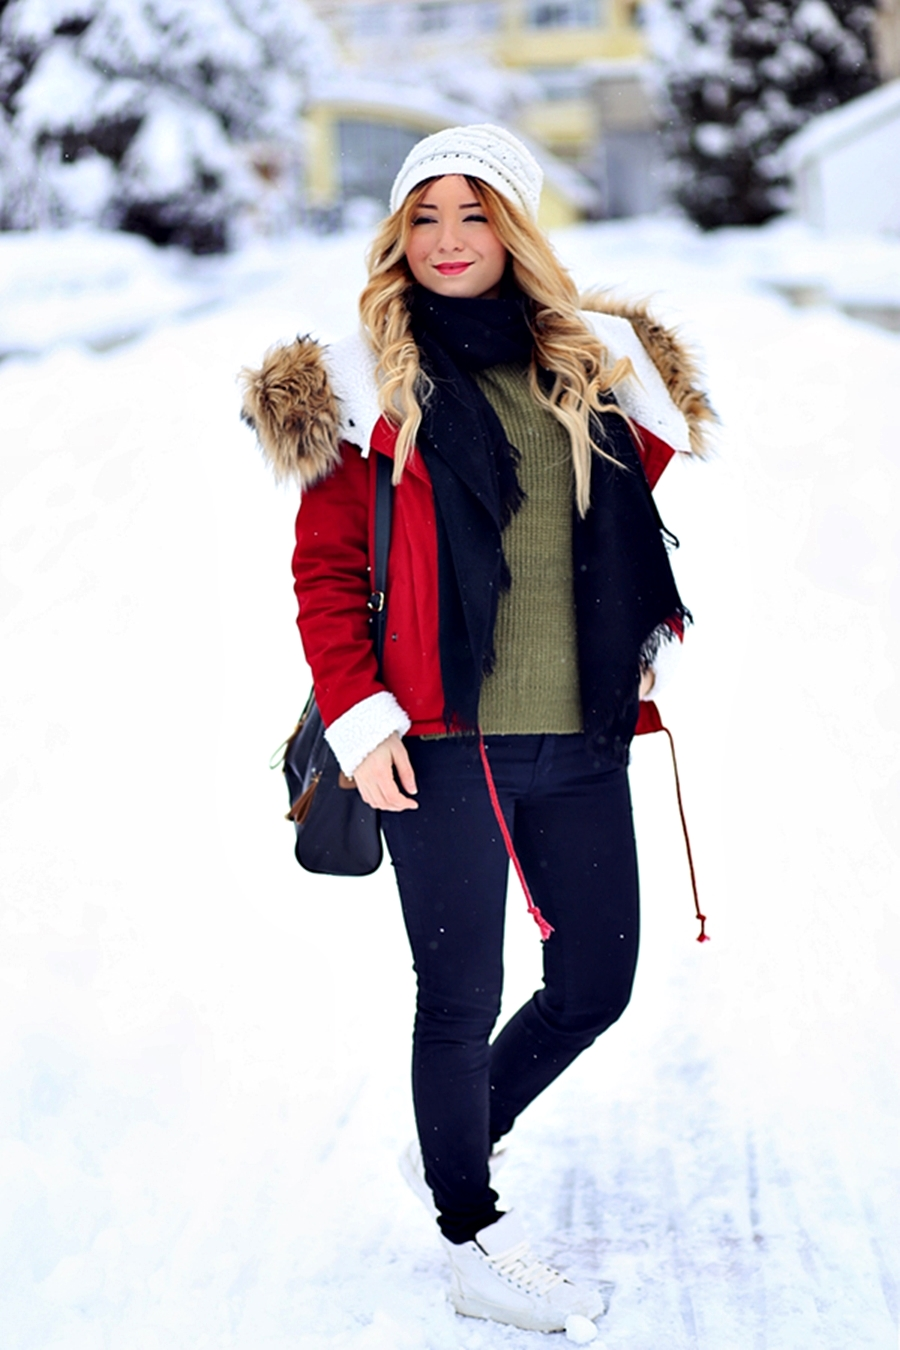 Street style: winter outfit, red fluffy jacket, military green sweater, Andreea Ristea fashion blogger